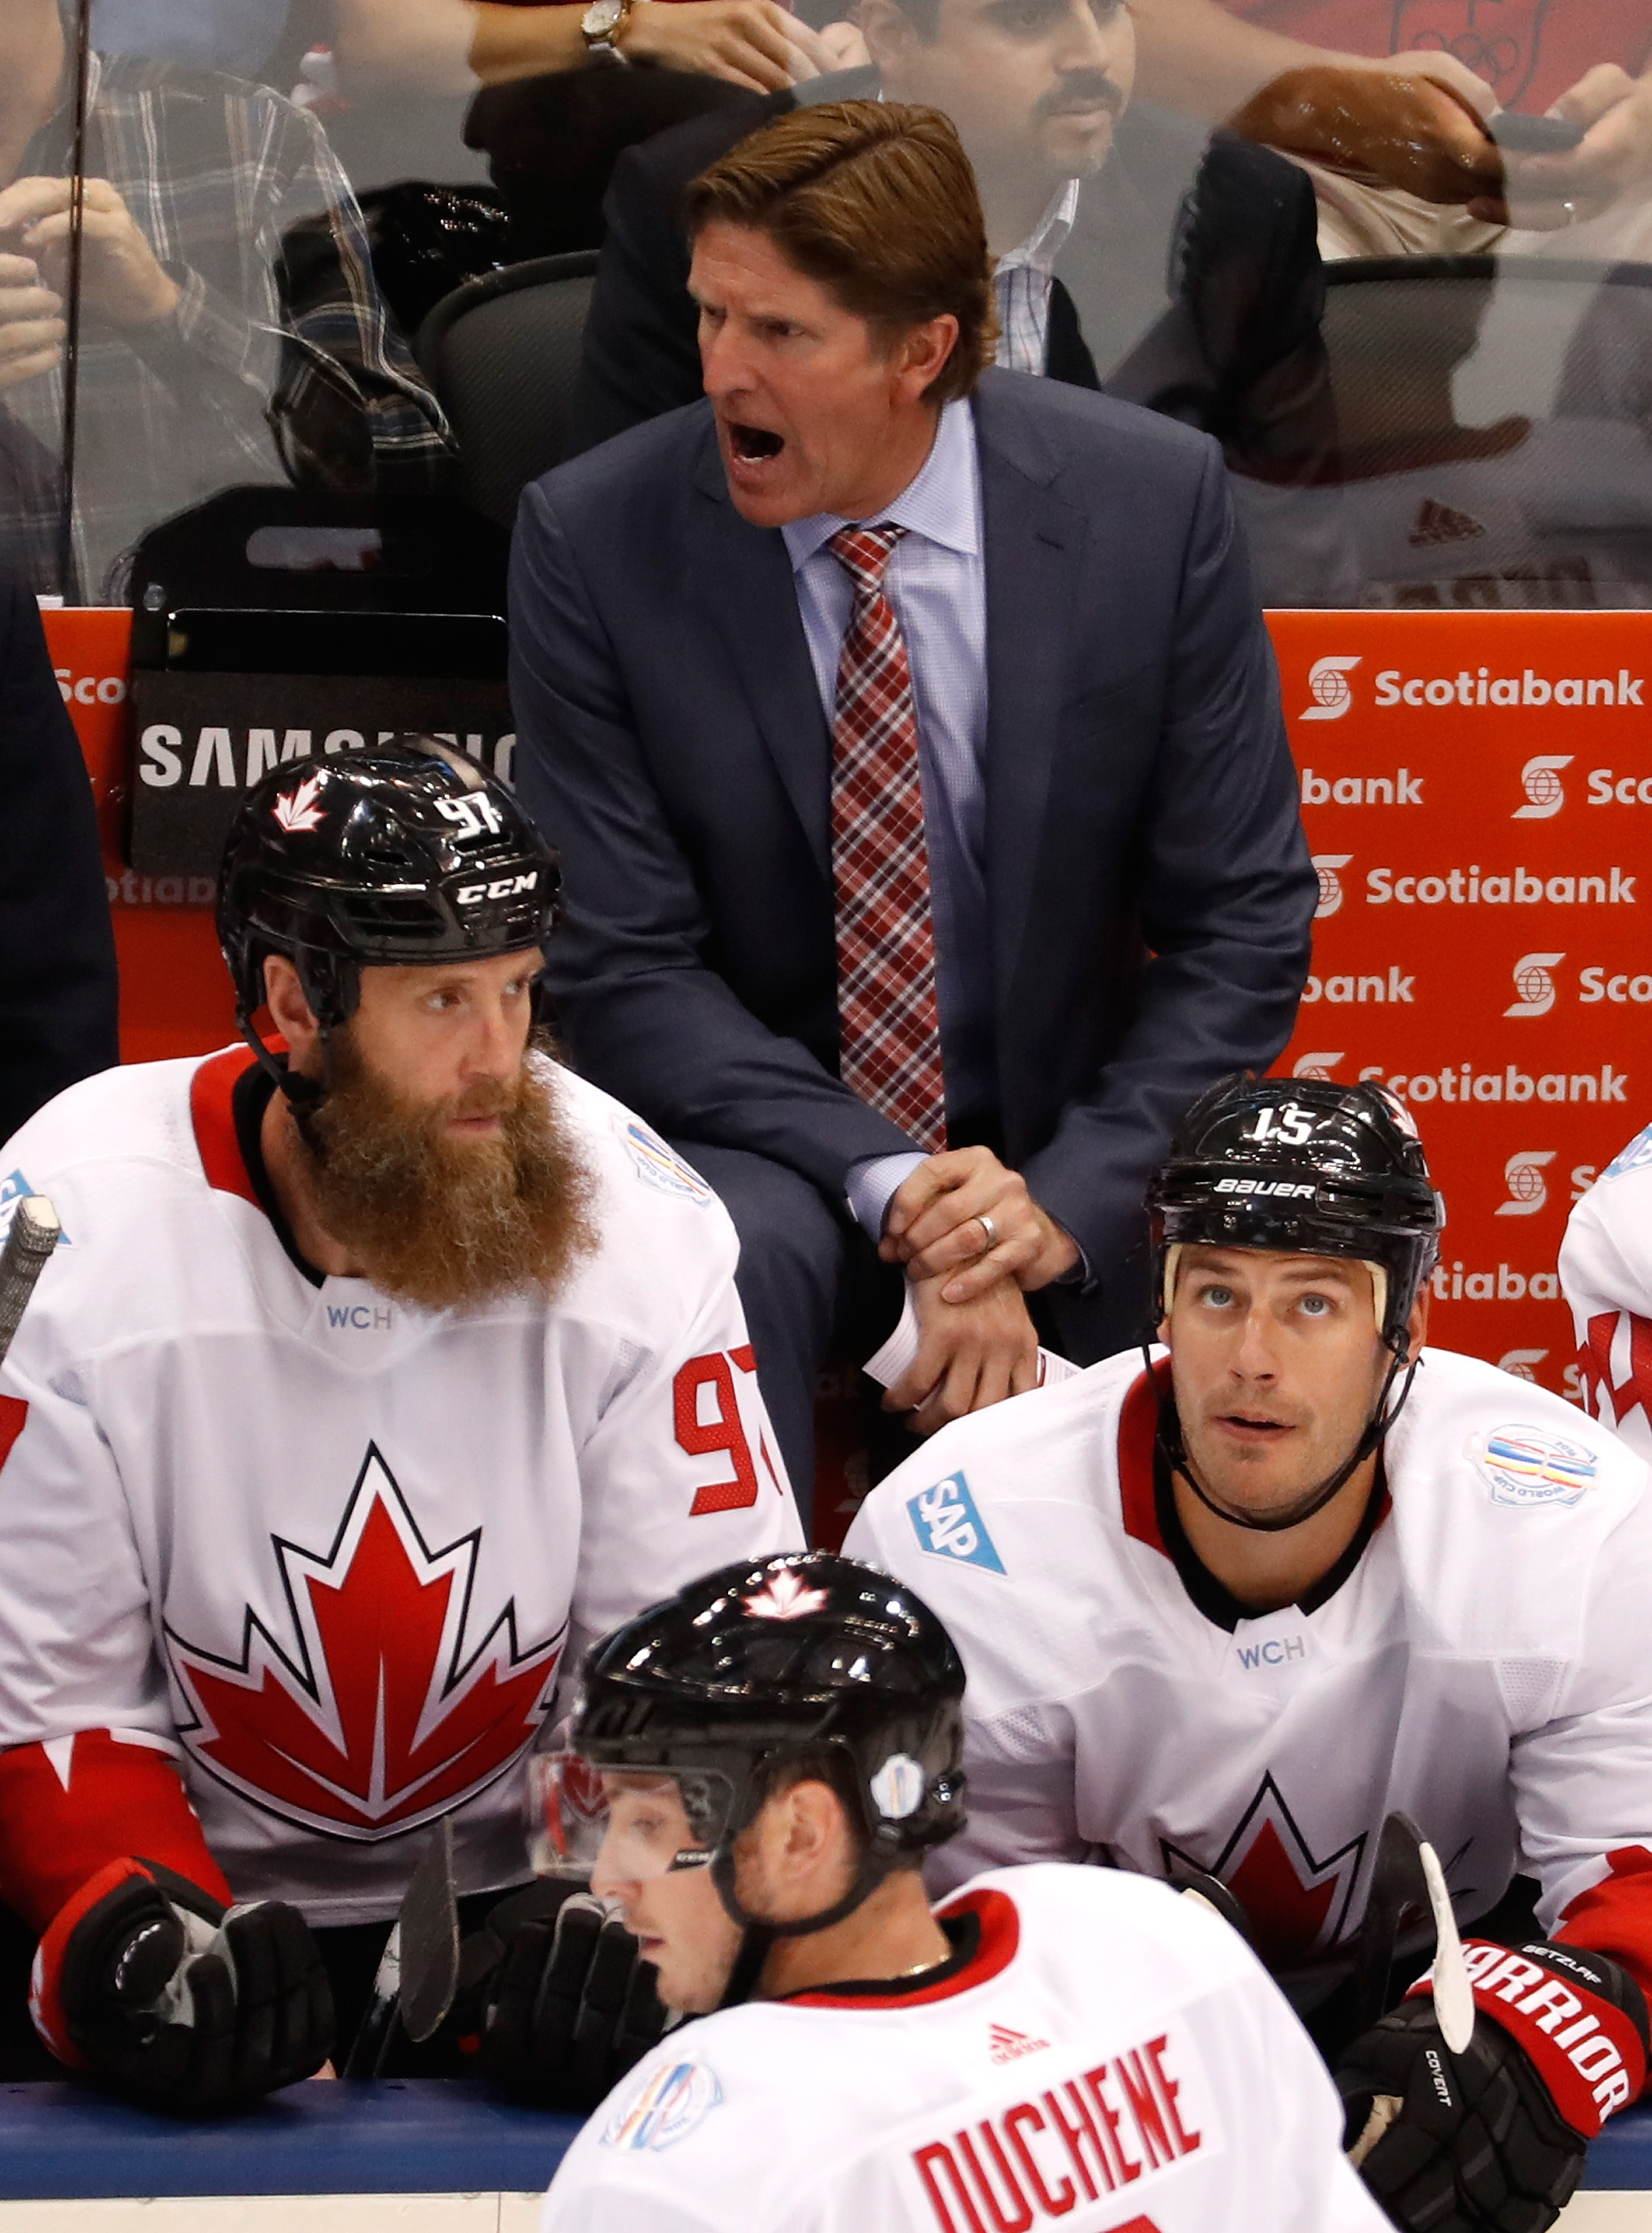 TORONTO, ON - SEPTEMBER 20: Head coach Mike Babcock of Team Canada yells on the bench while playing Team USA during the World Cup of Hockey at the Air Canada Center on September 20, 2016 in Toronto, Canada. (Photo by Gregory Shamus/Getty Images)